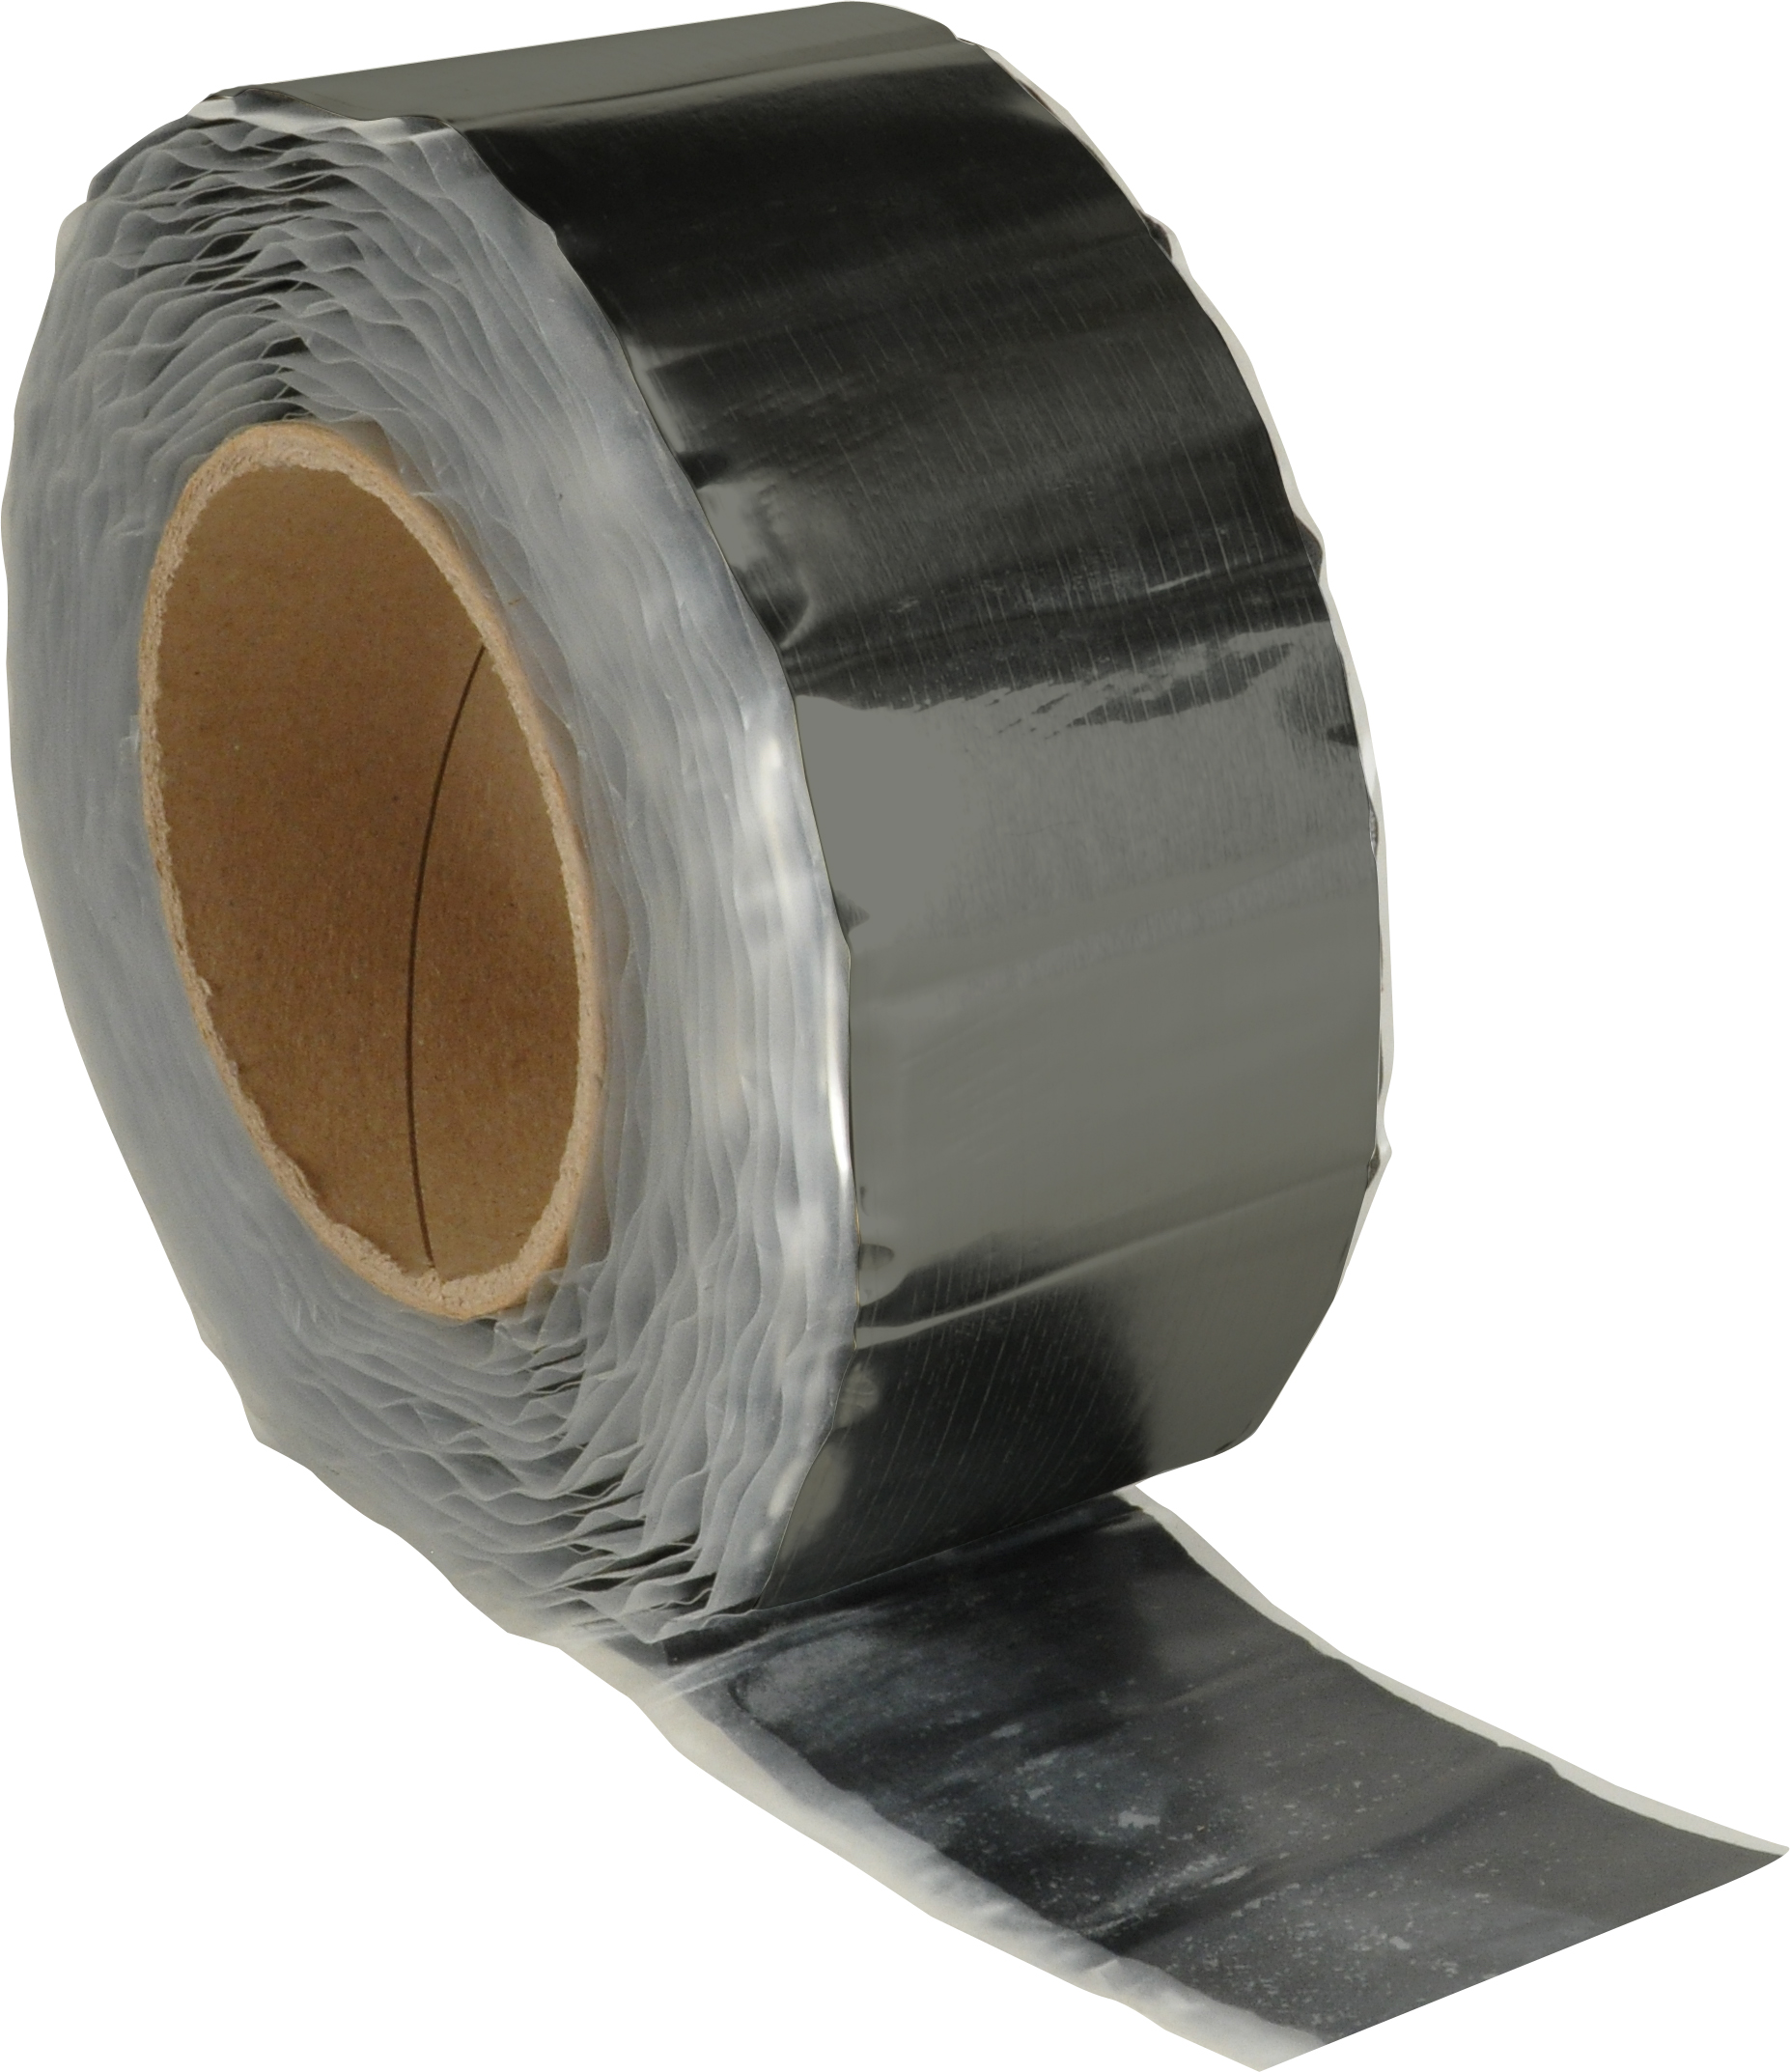 leisure mat repair gear and ga ultra aid strong comp tenacious red mats alpine products ttape tape